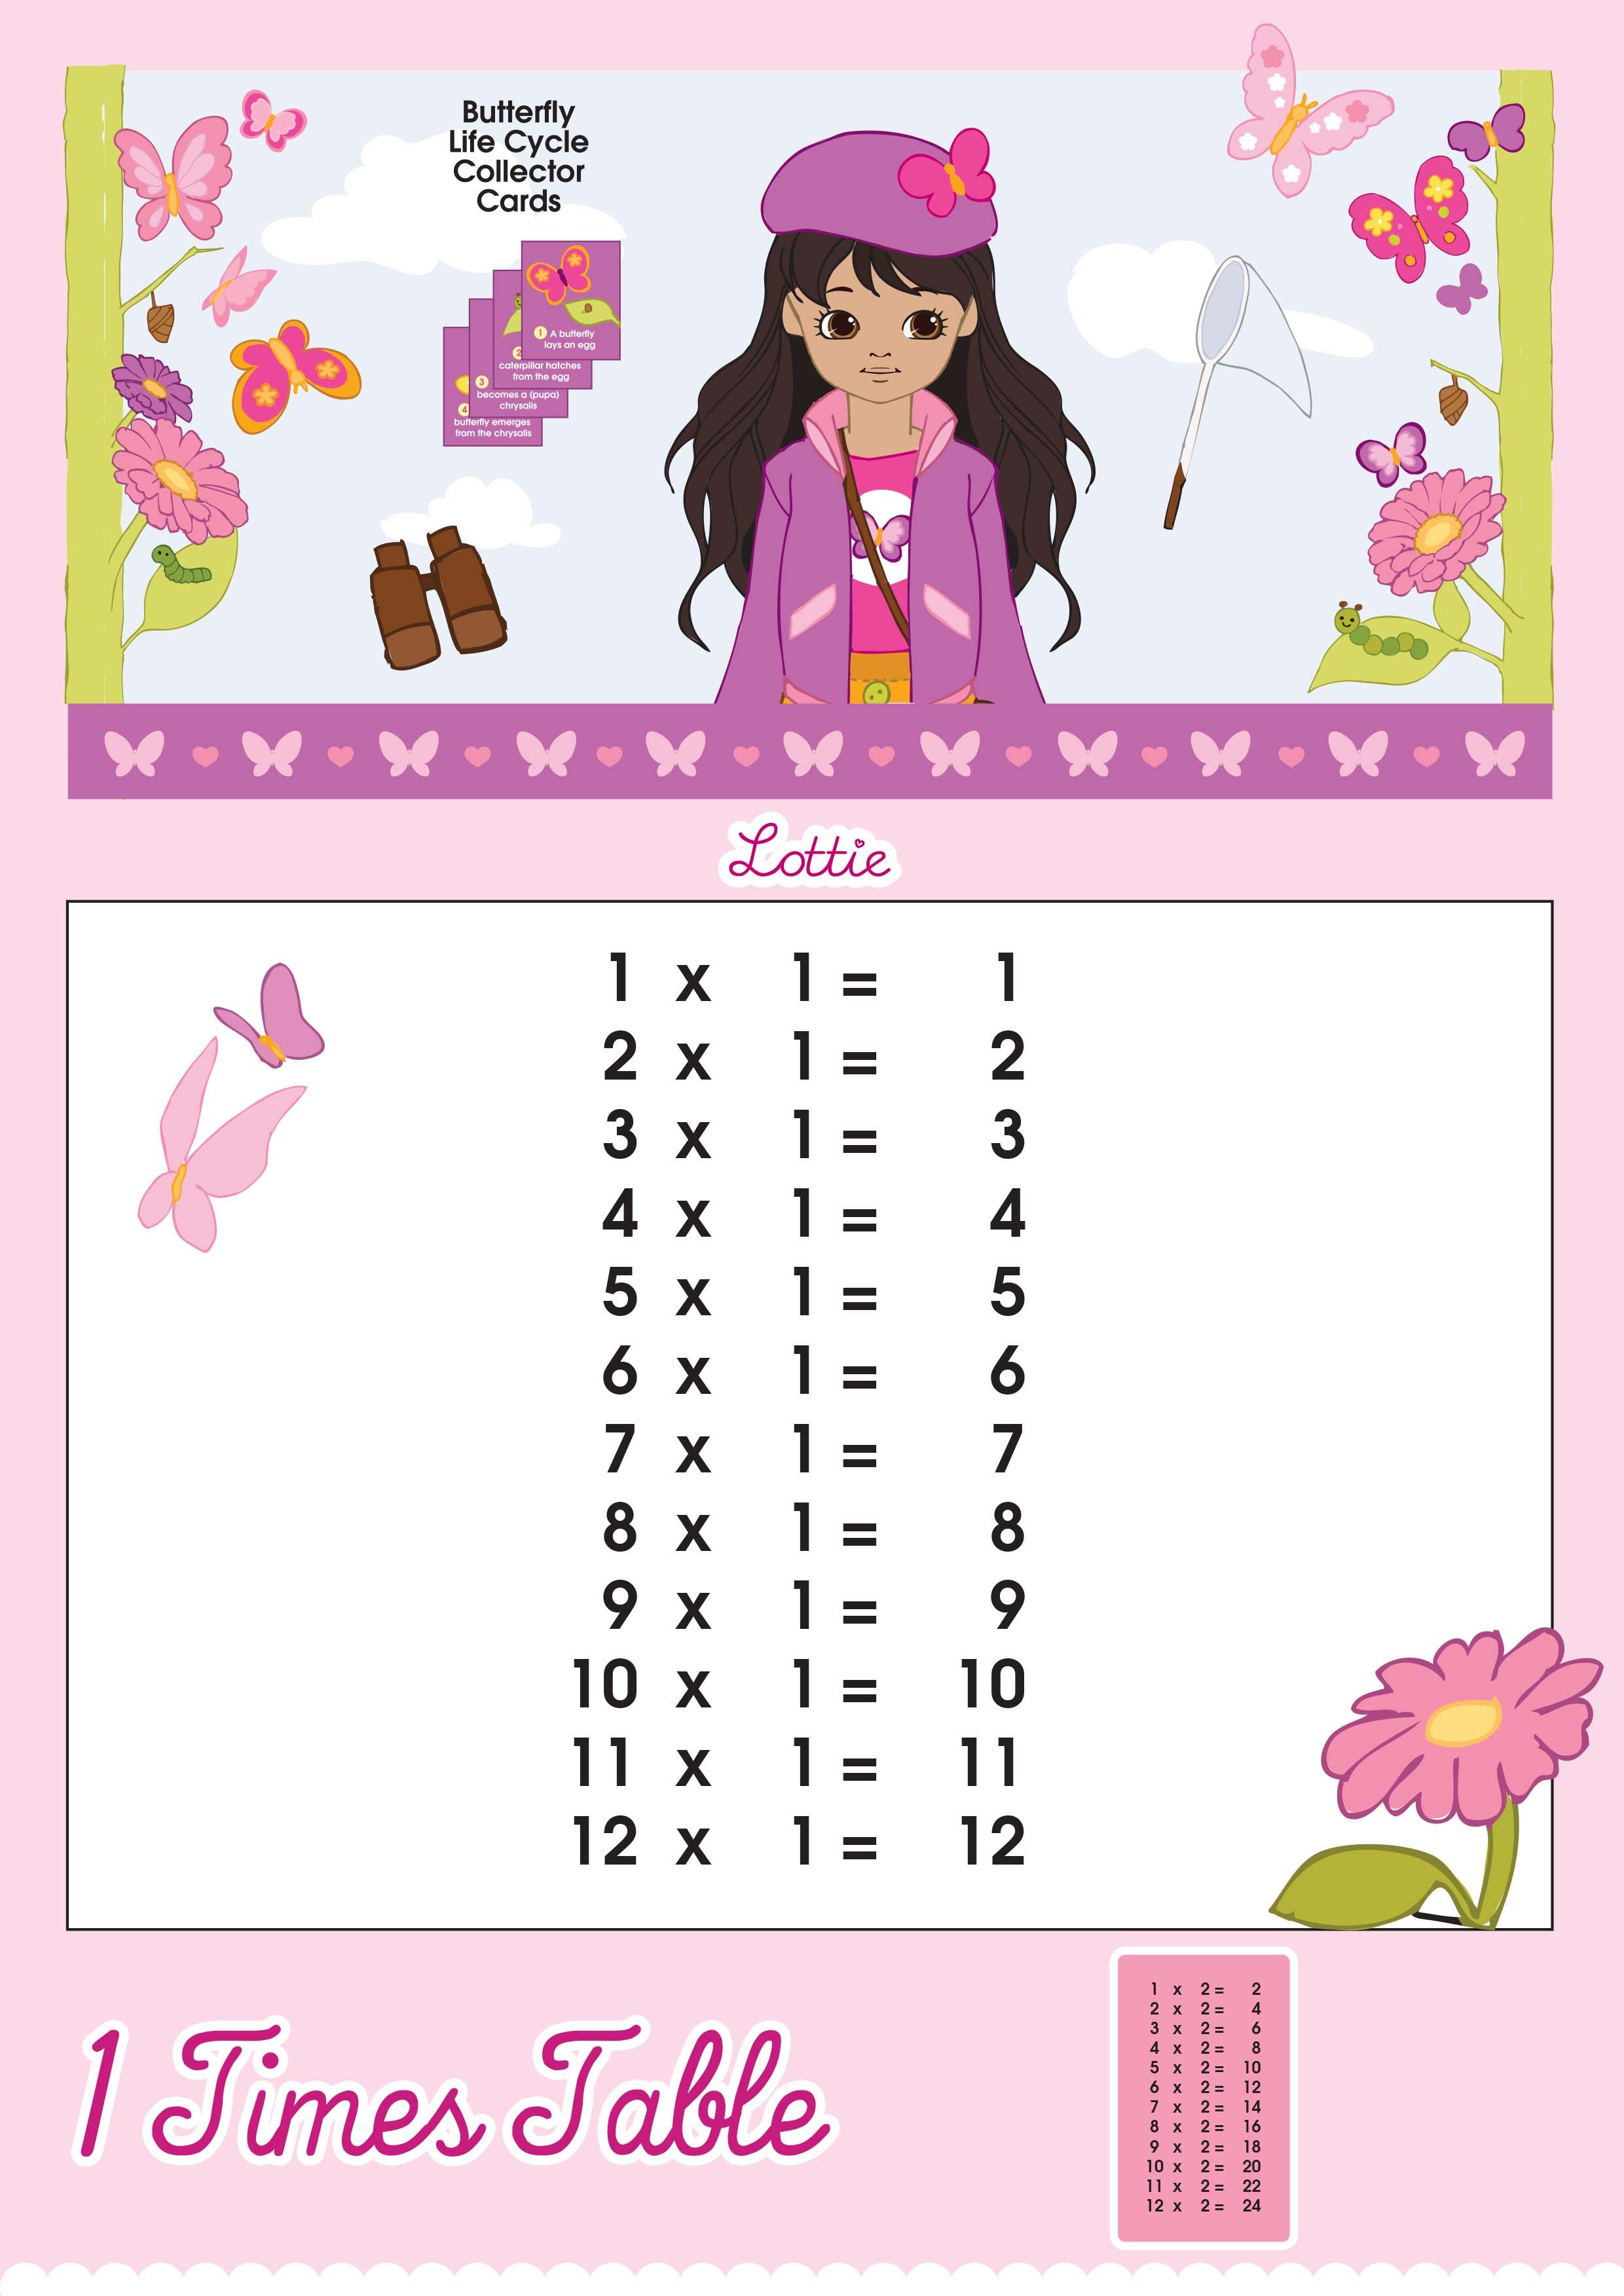 1 times table printable chart multiplication table printable 1 times table printable chart gamestrikefo Image collections